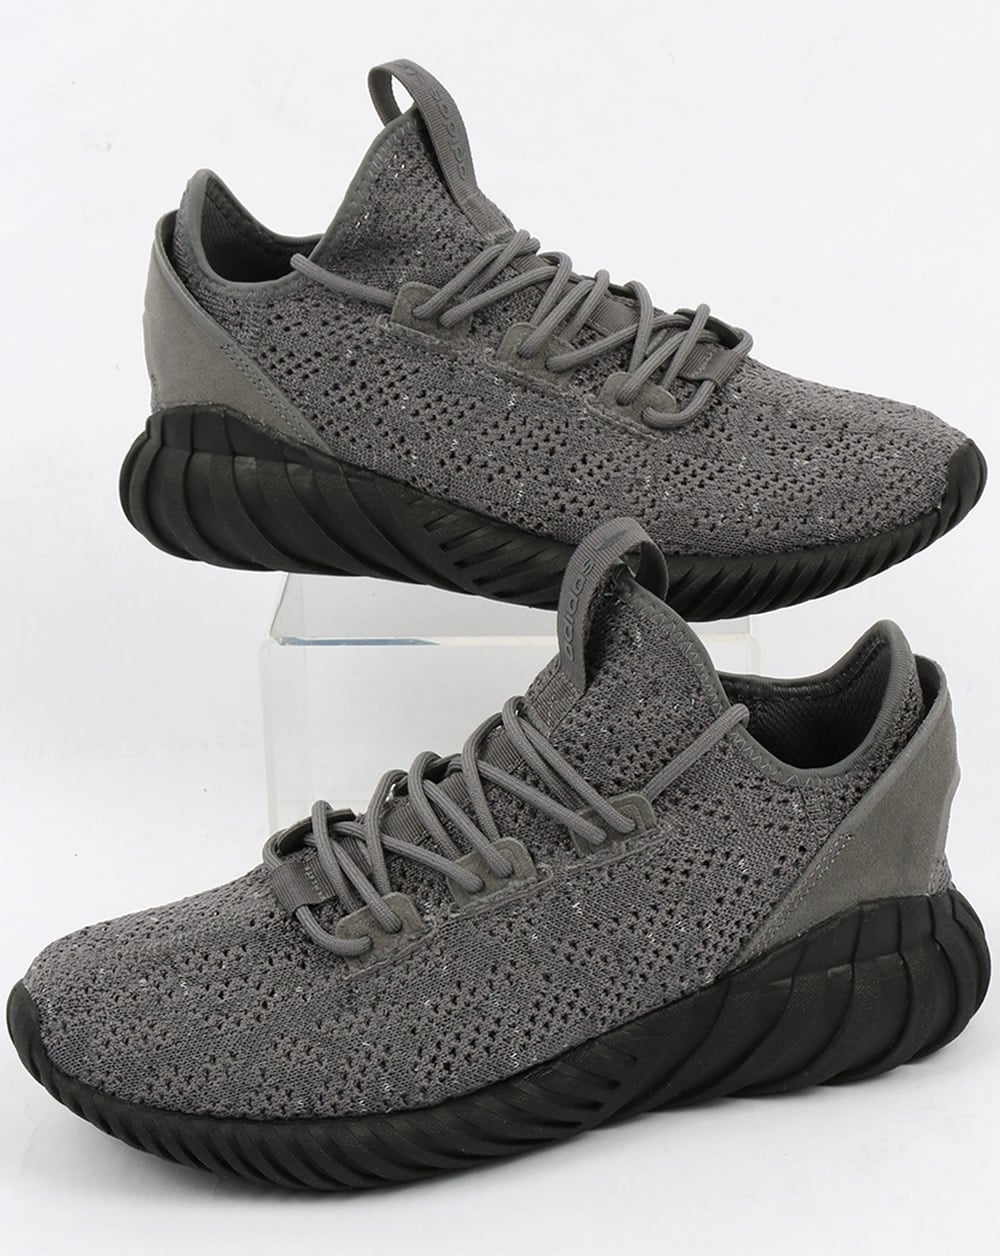 new concept 78ed8 8425d adidas Trainers Adidas Tubular Doom Sock Trainers Grey Black White